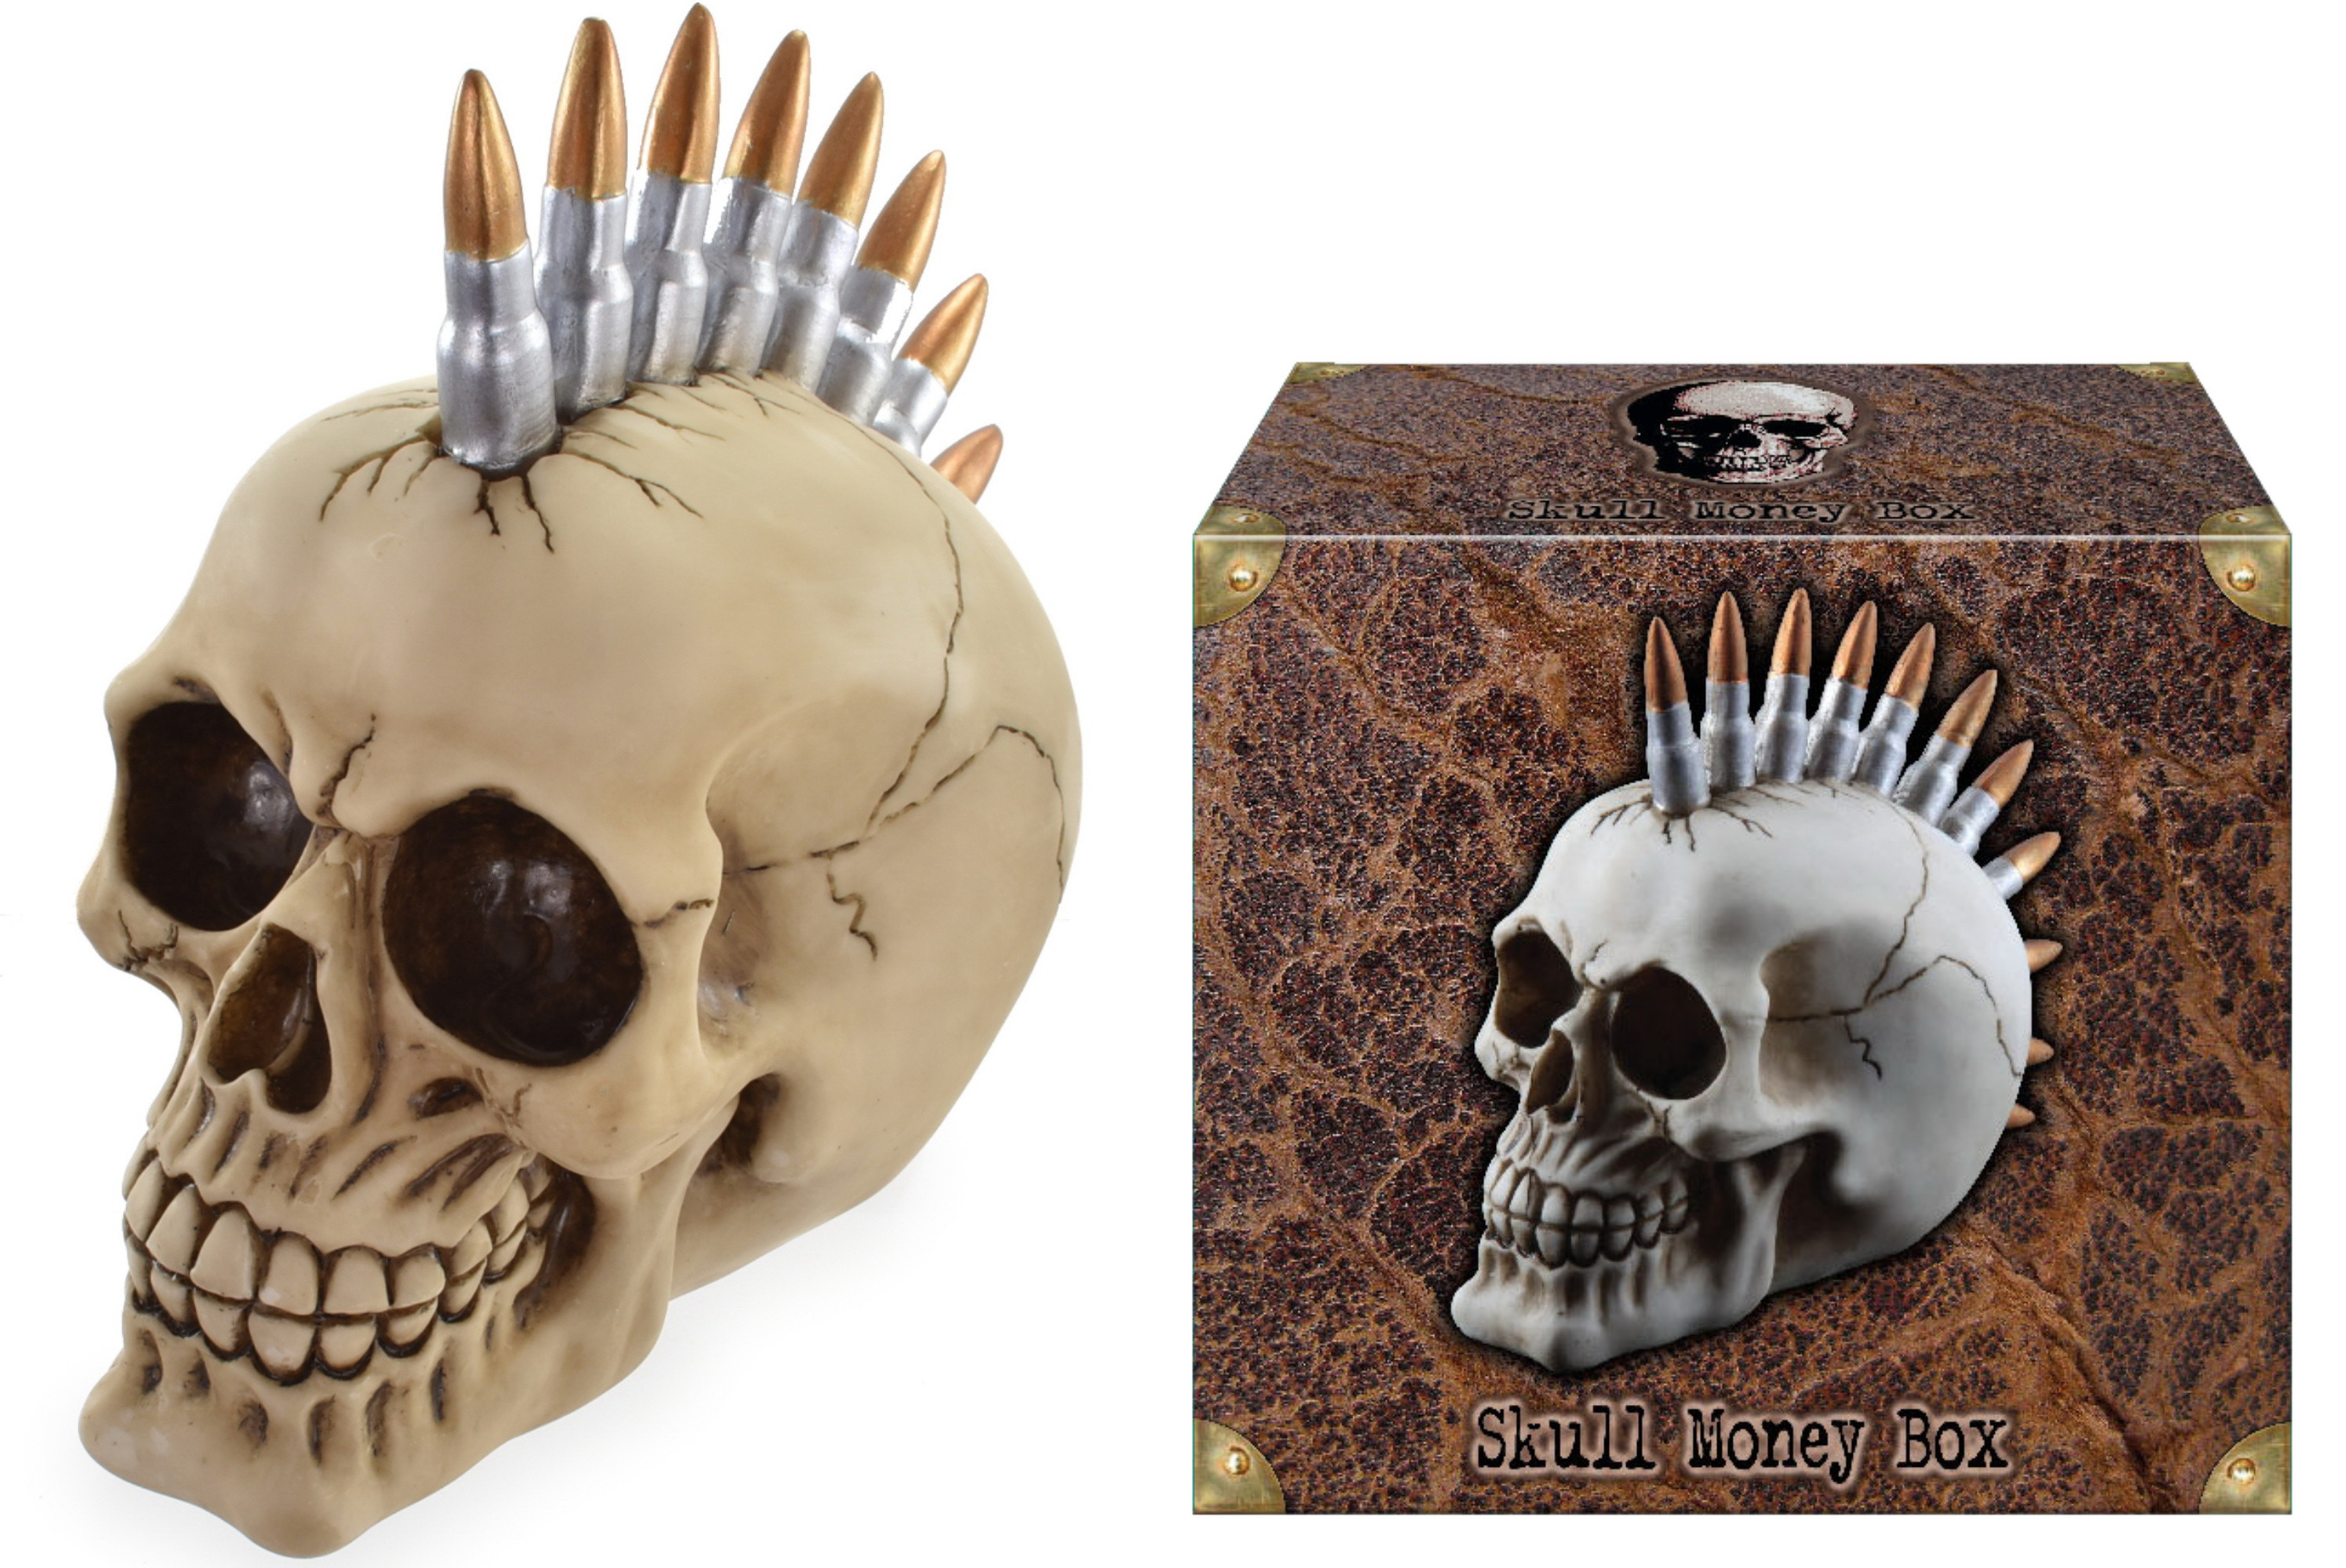 Bullet Head Skull Money Box